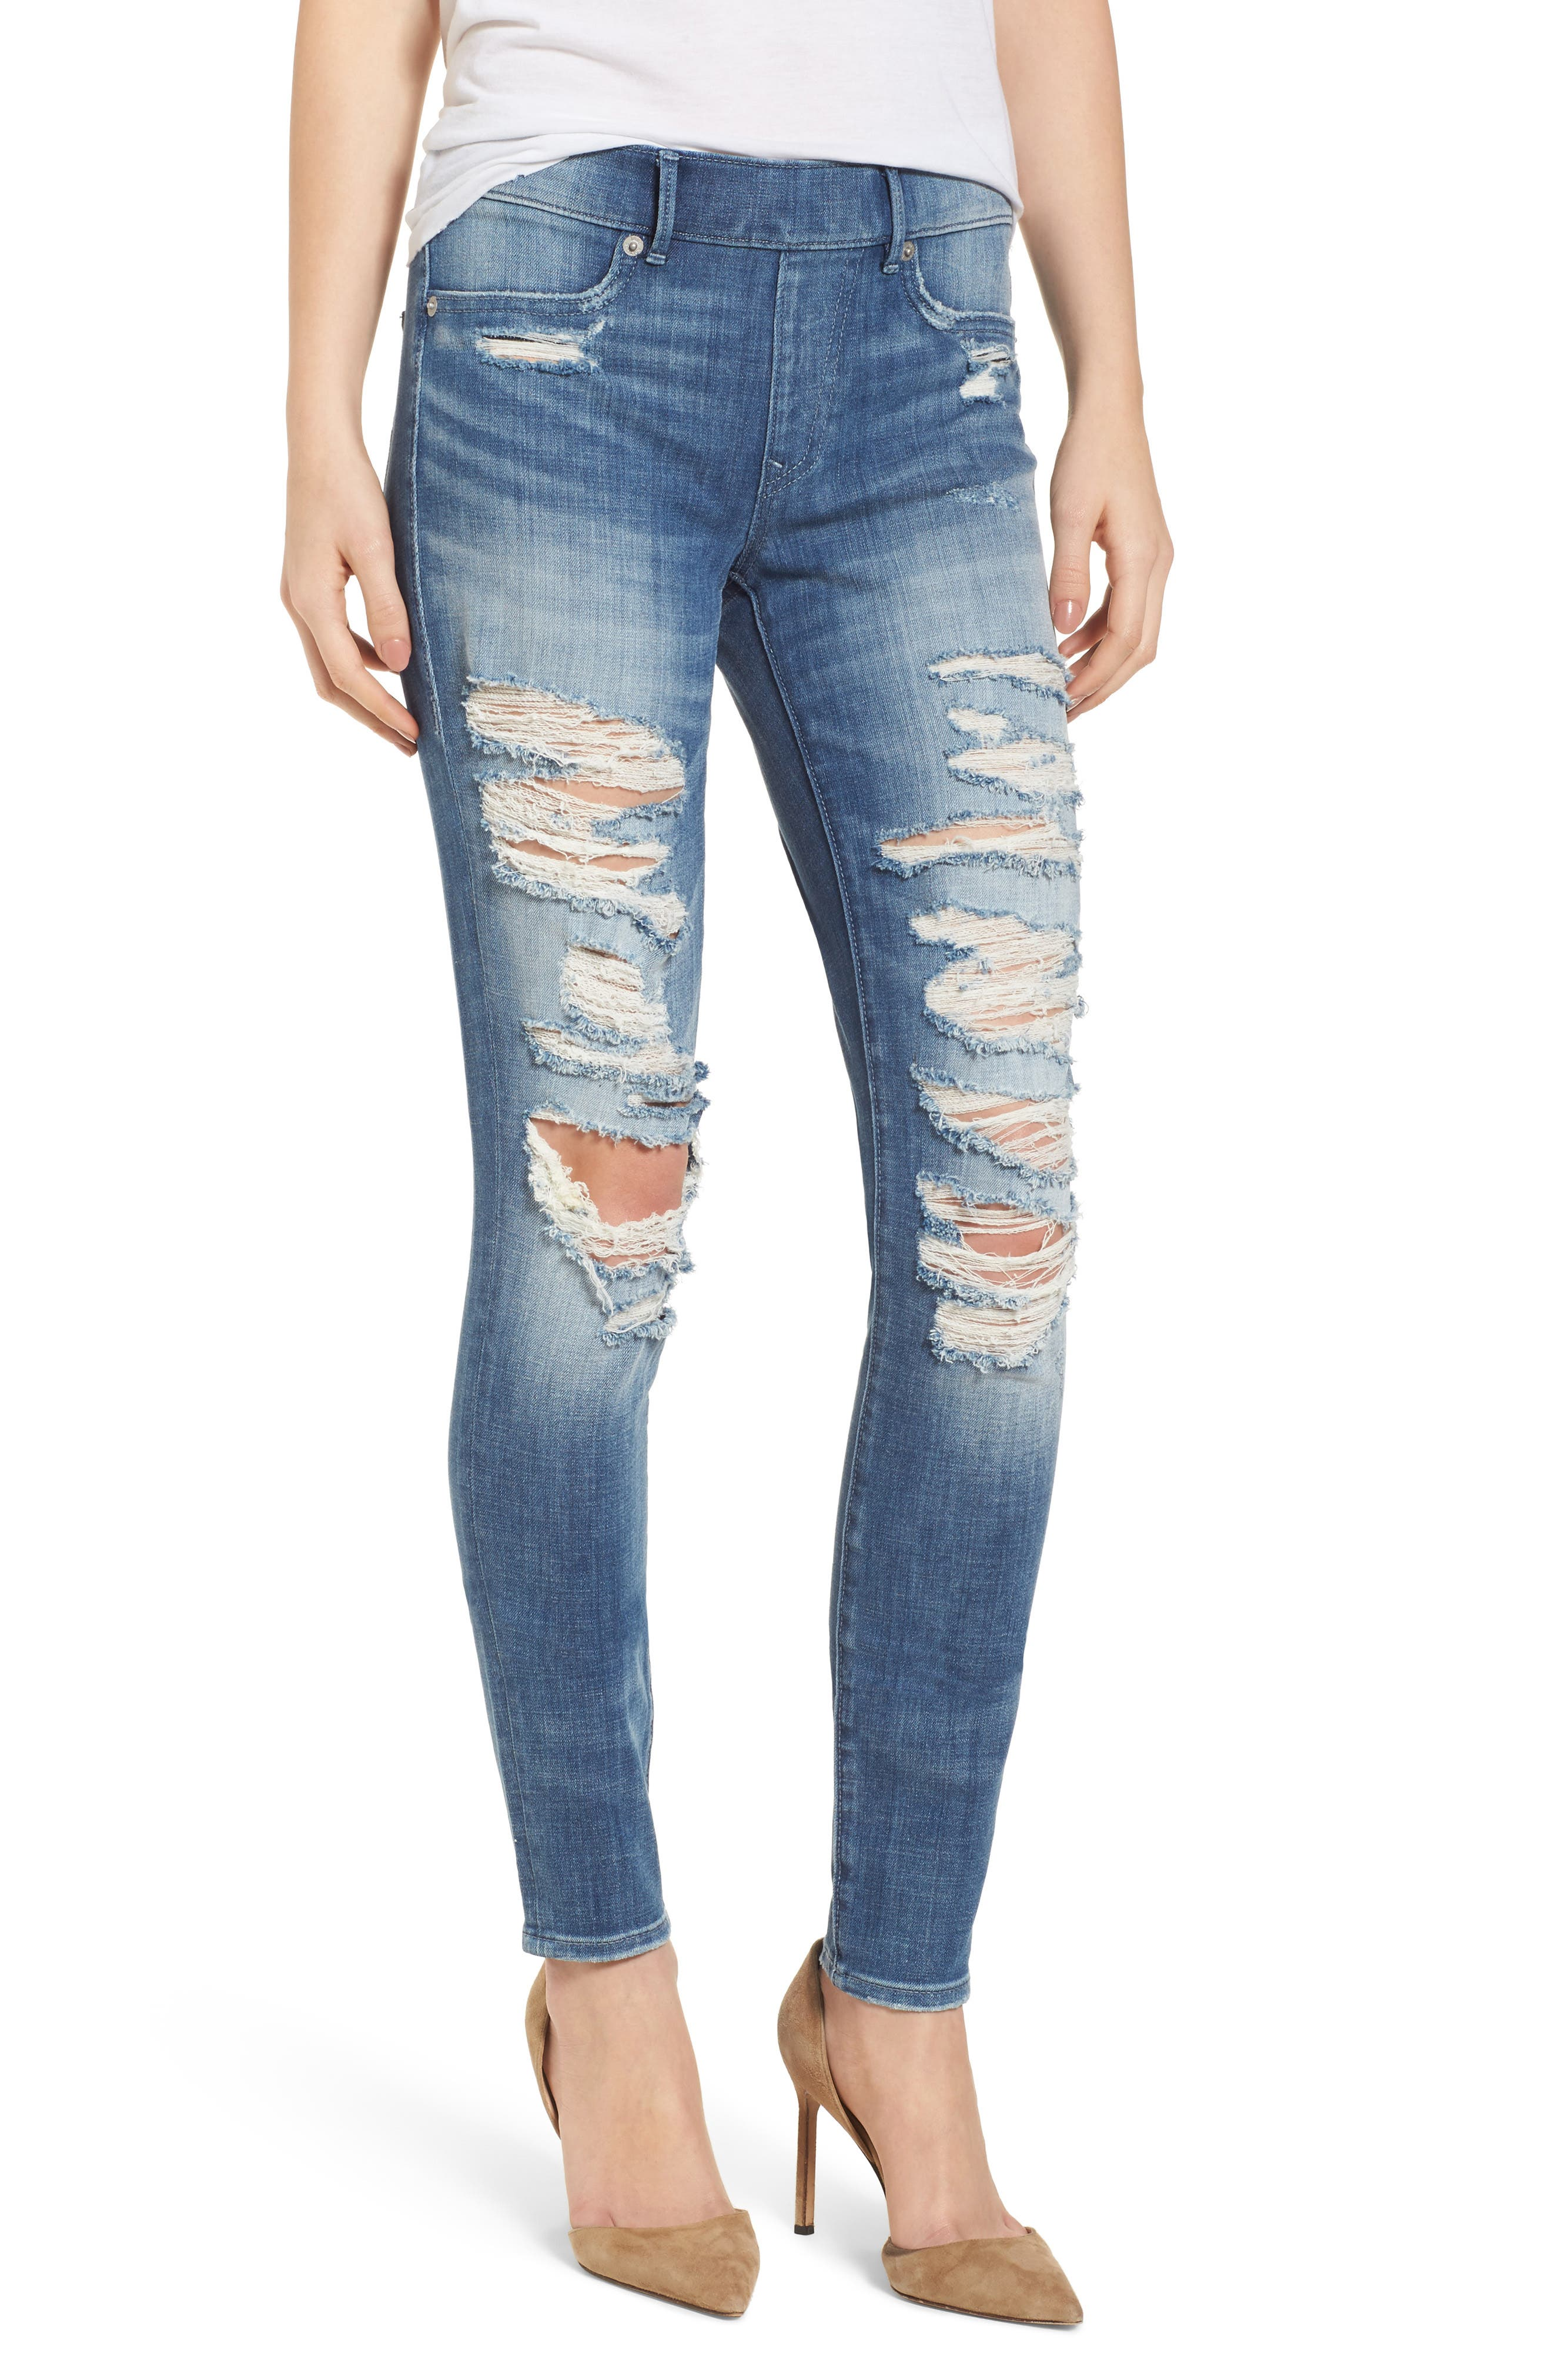 Jennie Runaway Legging Jeans,                         Main,                         color, Washed Out Destroy